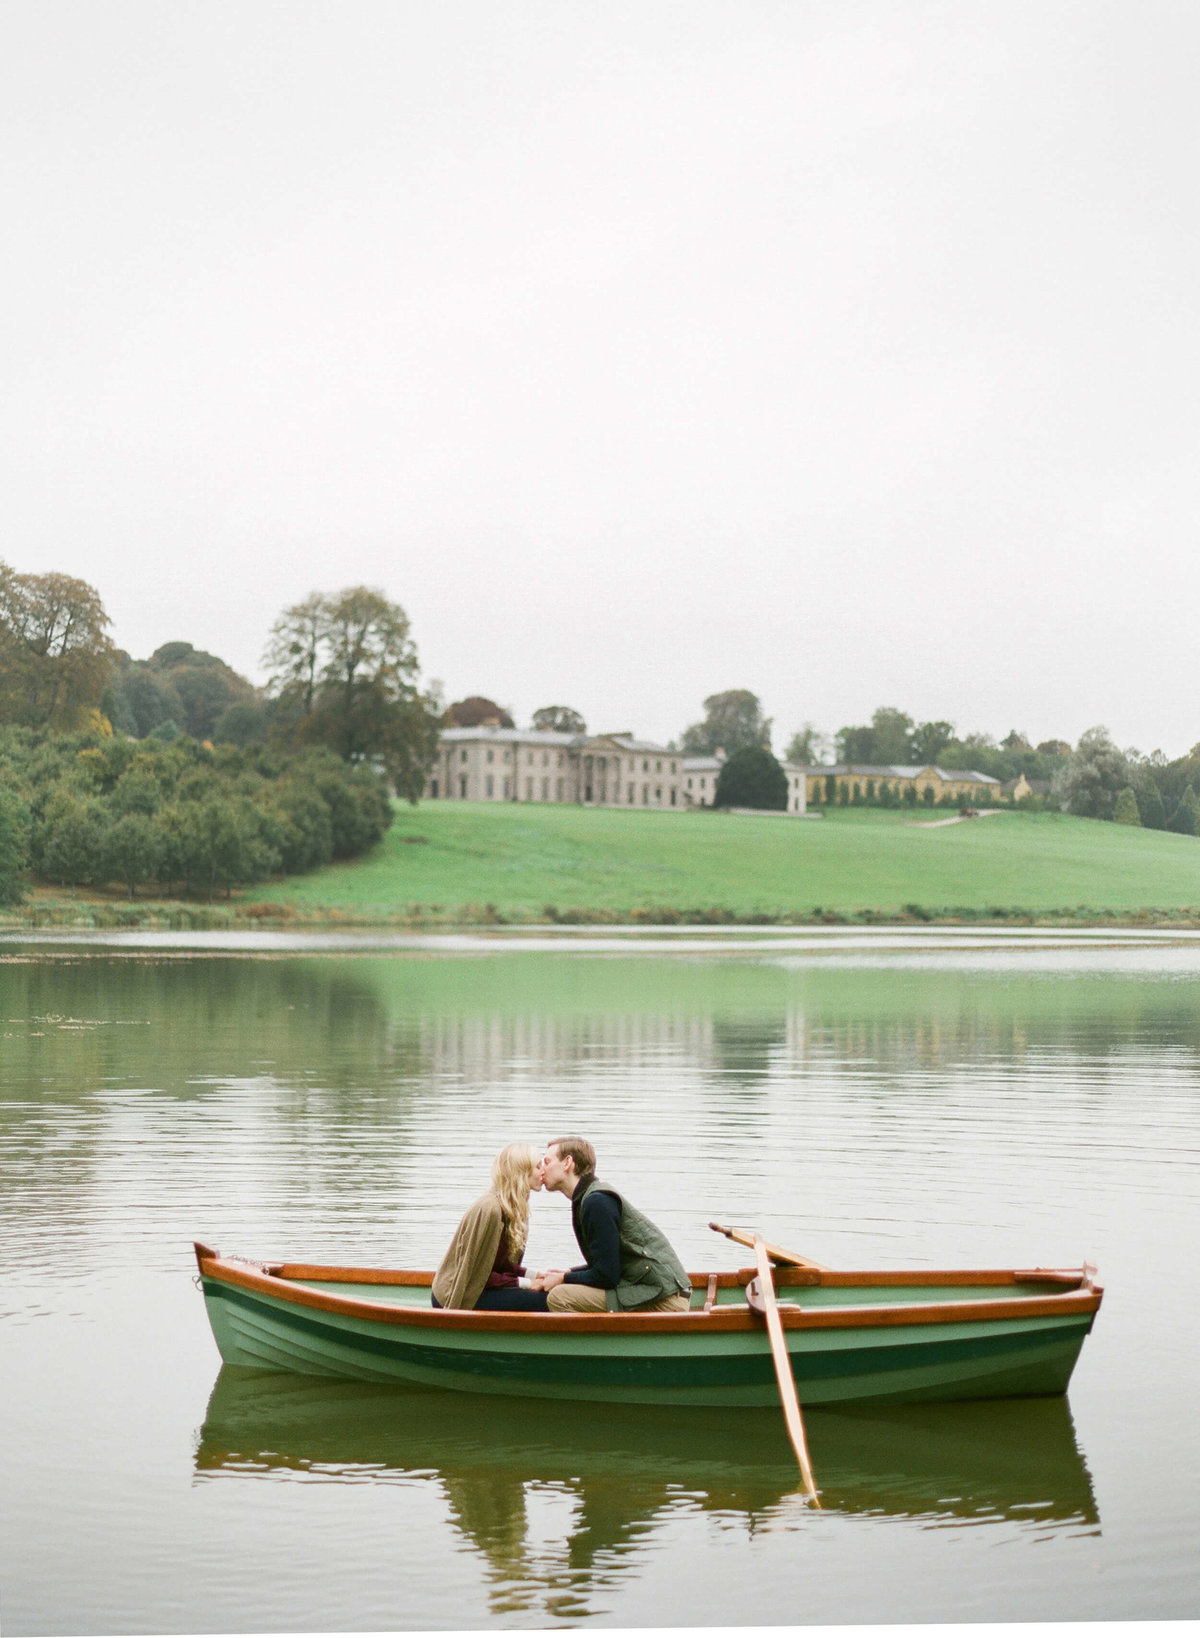 5-KTMerry-destination-weddings-Ireland-Ballyfin-couple-boating